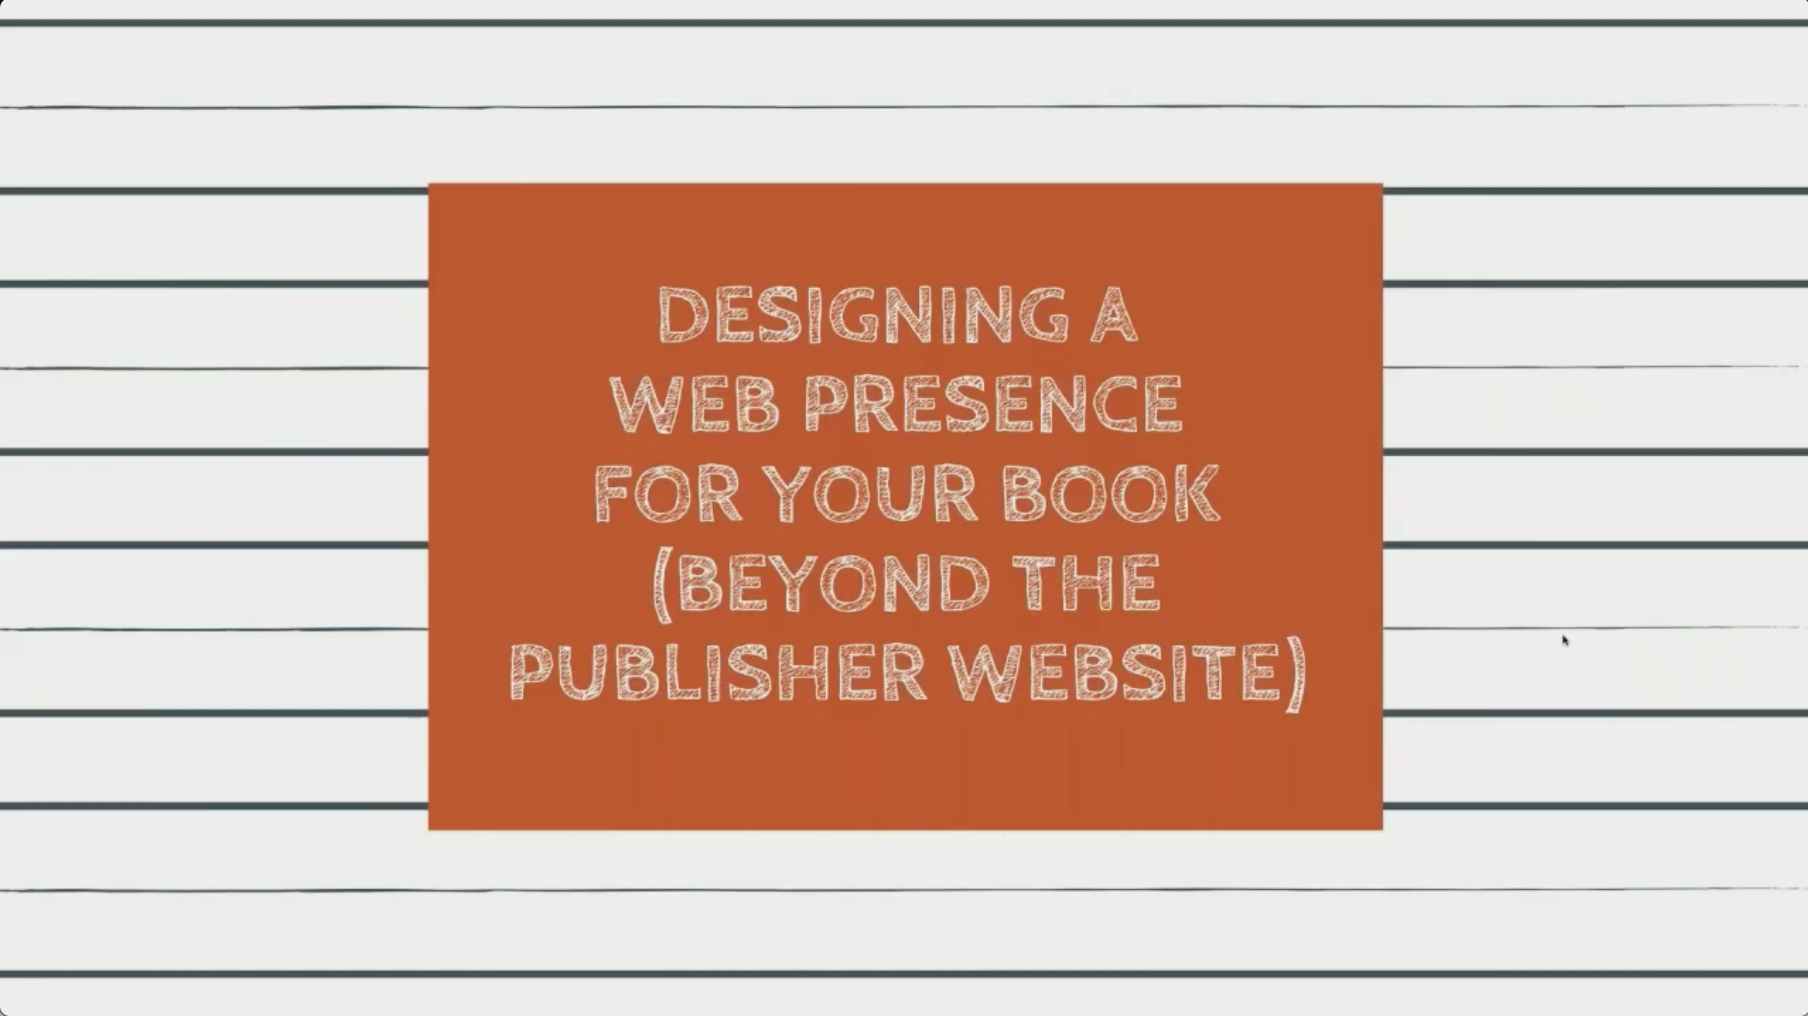 Designing a Web Presence for Your Book